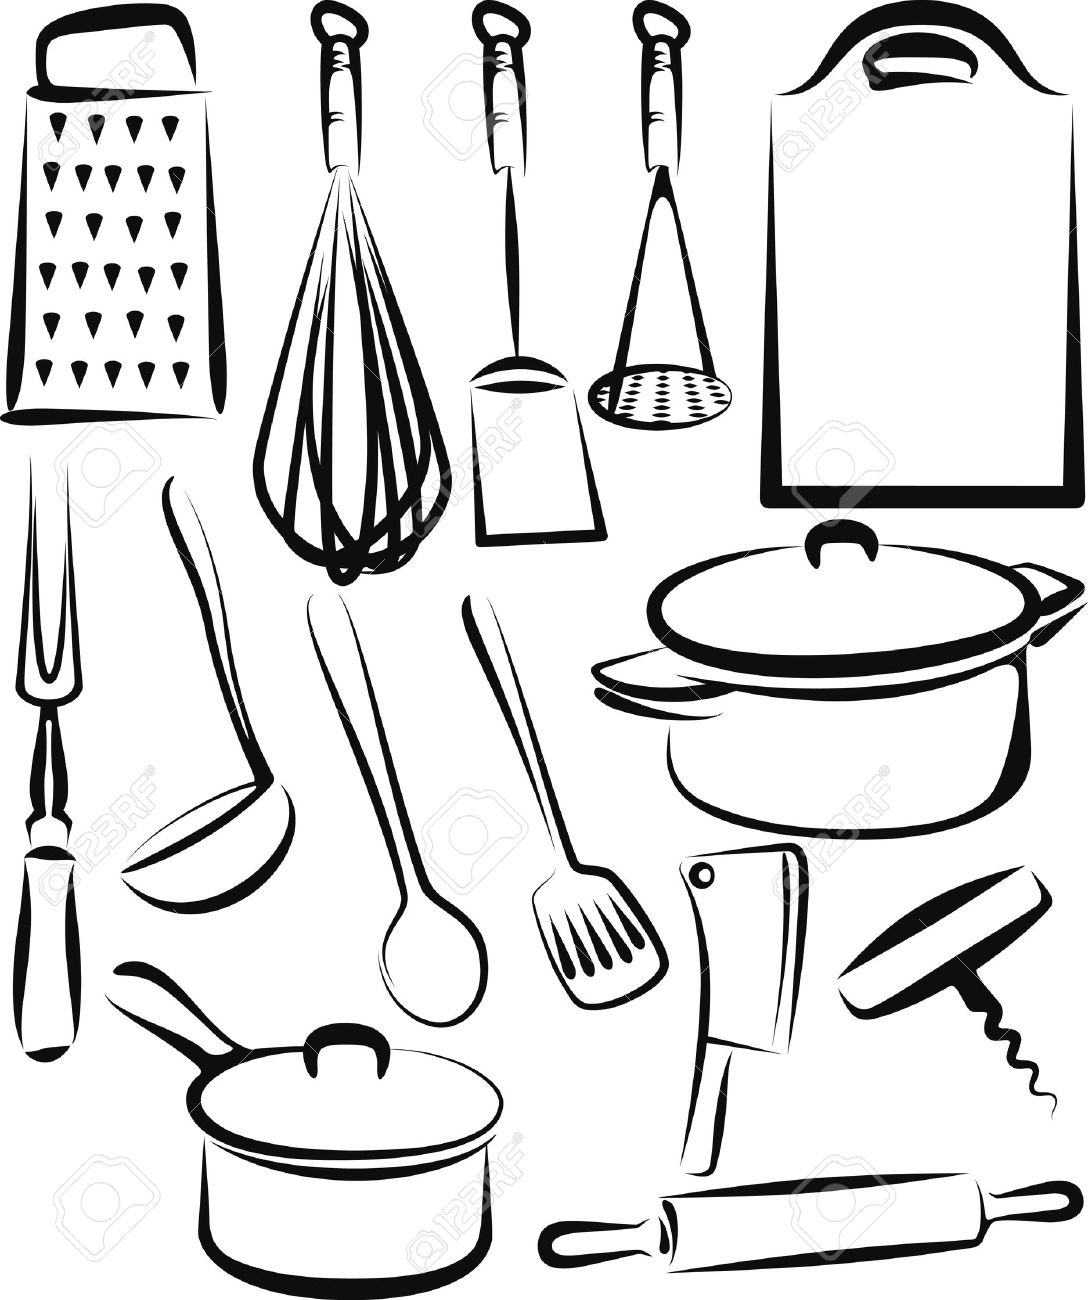 Kitchen Utensils Silhouette Vector Free 82745 Kitchen Utensil Stock Vector Illustration And Royalty Free